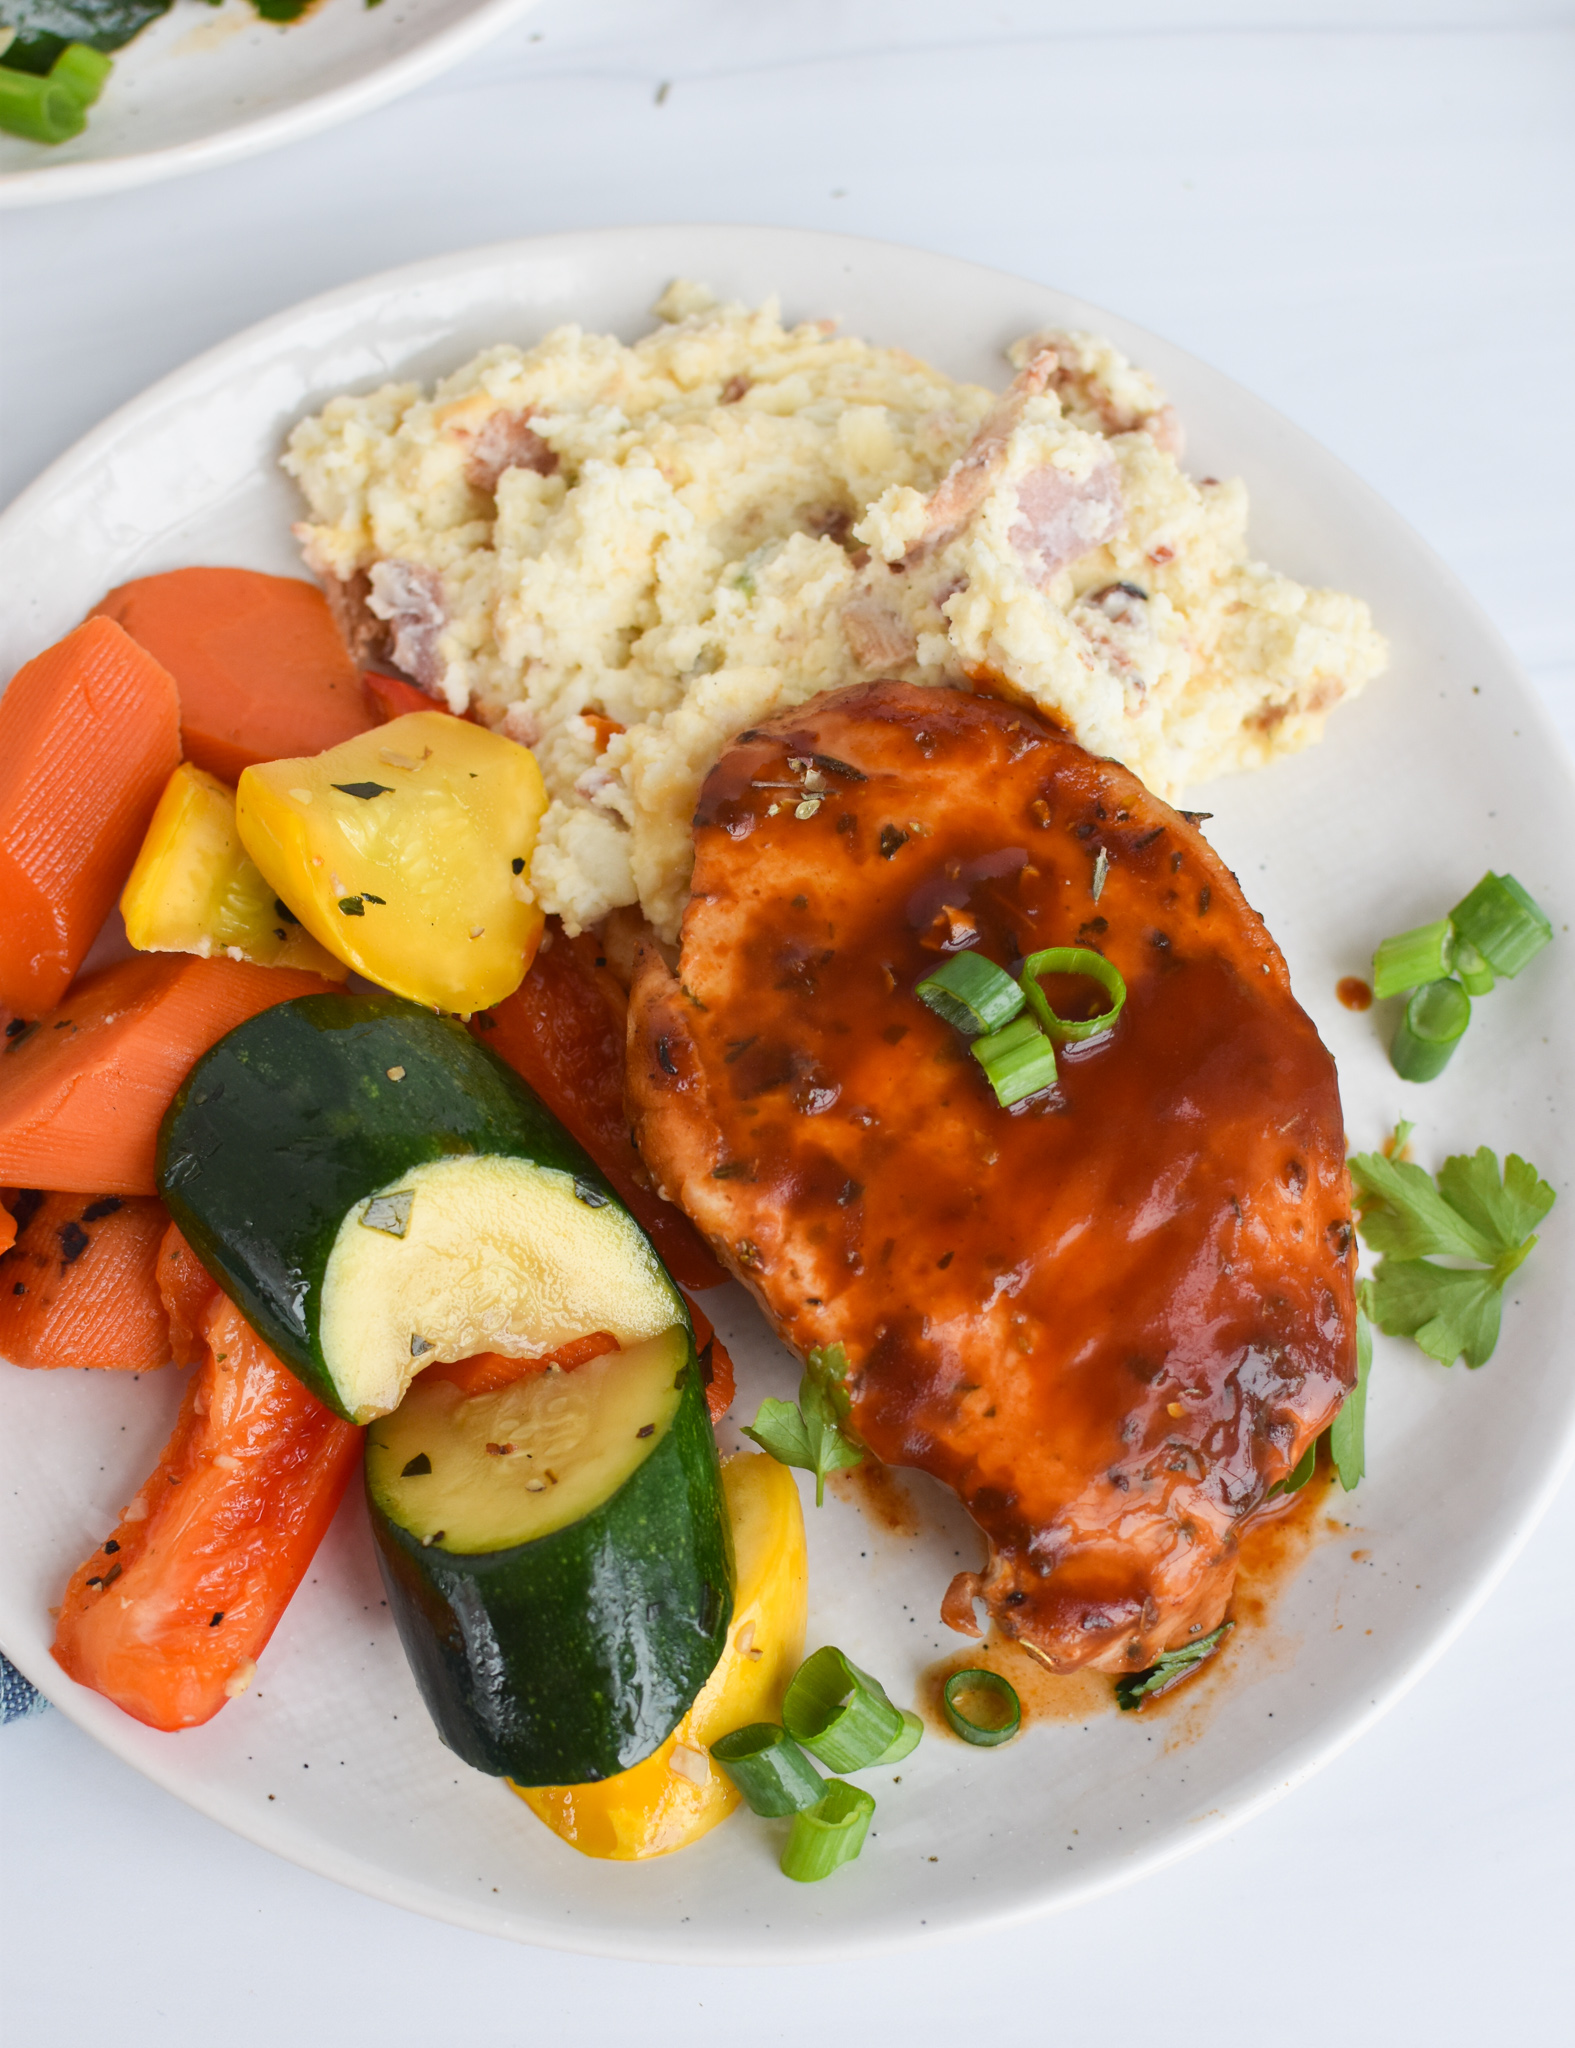 BBQ Baked Pork Chops with vegetables and mashed potatoes.